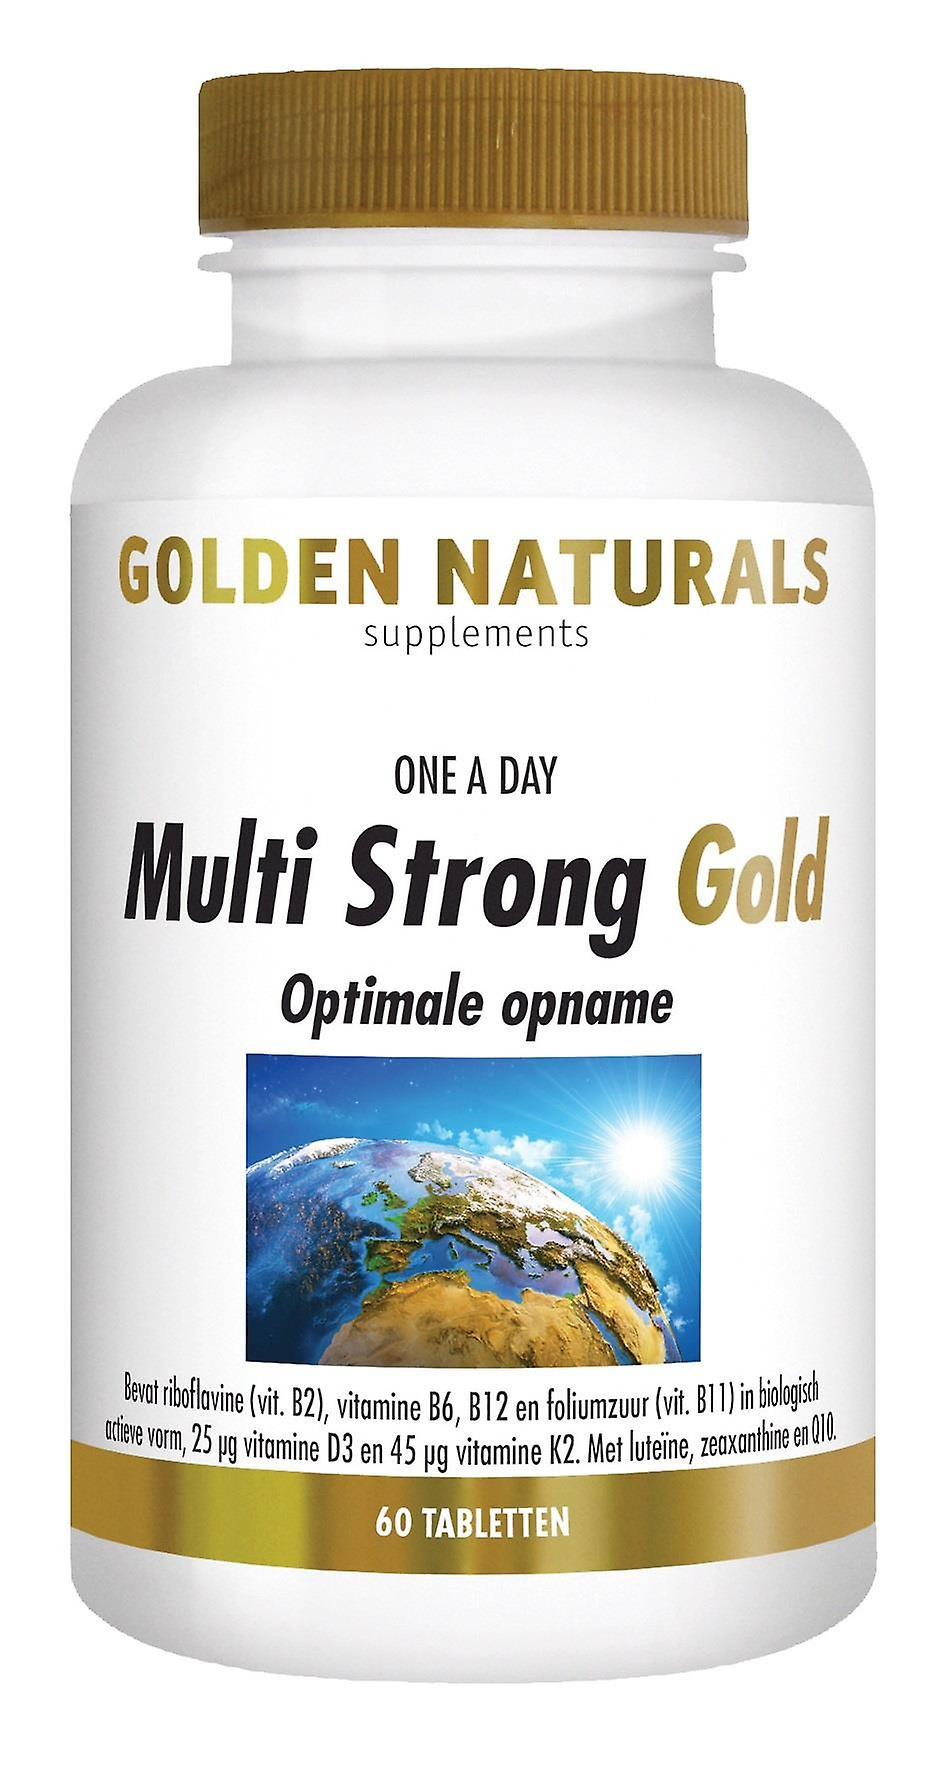 Golden Naturals Multi Strong Gold (60 tablets)